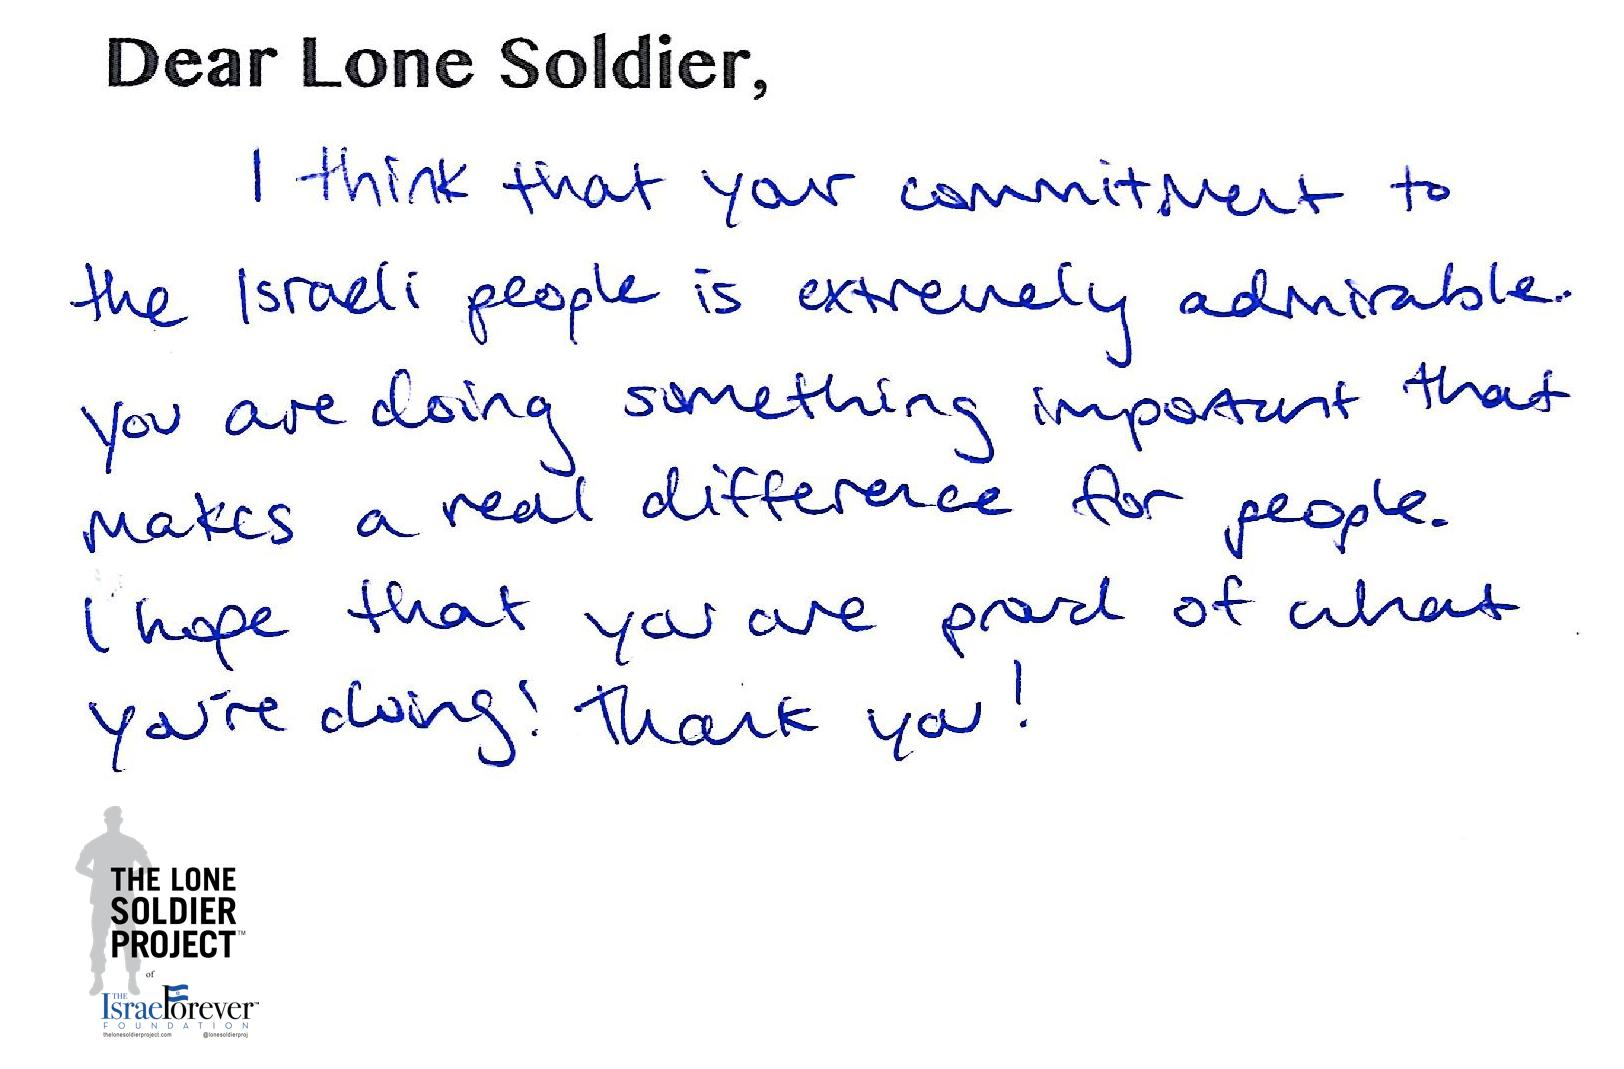 Campers at JCC of Greater Washington Send Thank You Letters to IDF Lone Soldiers